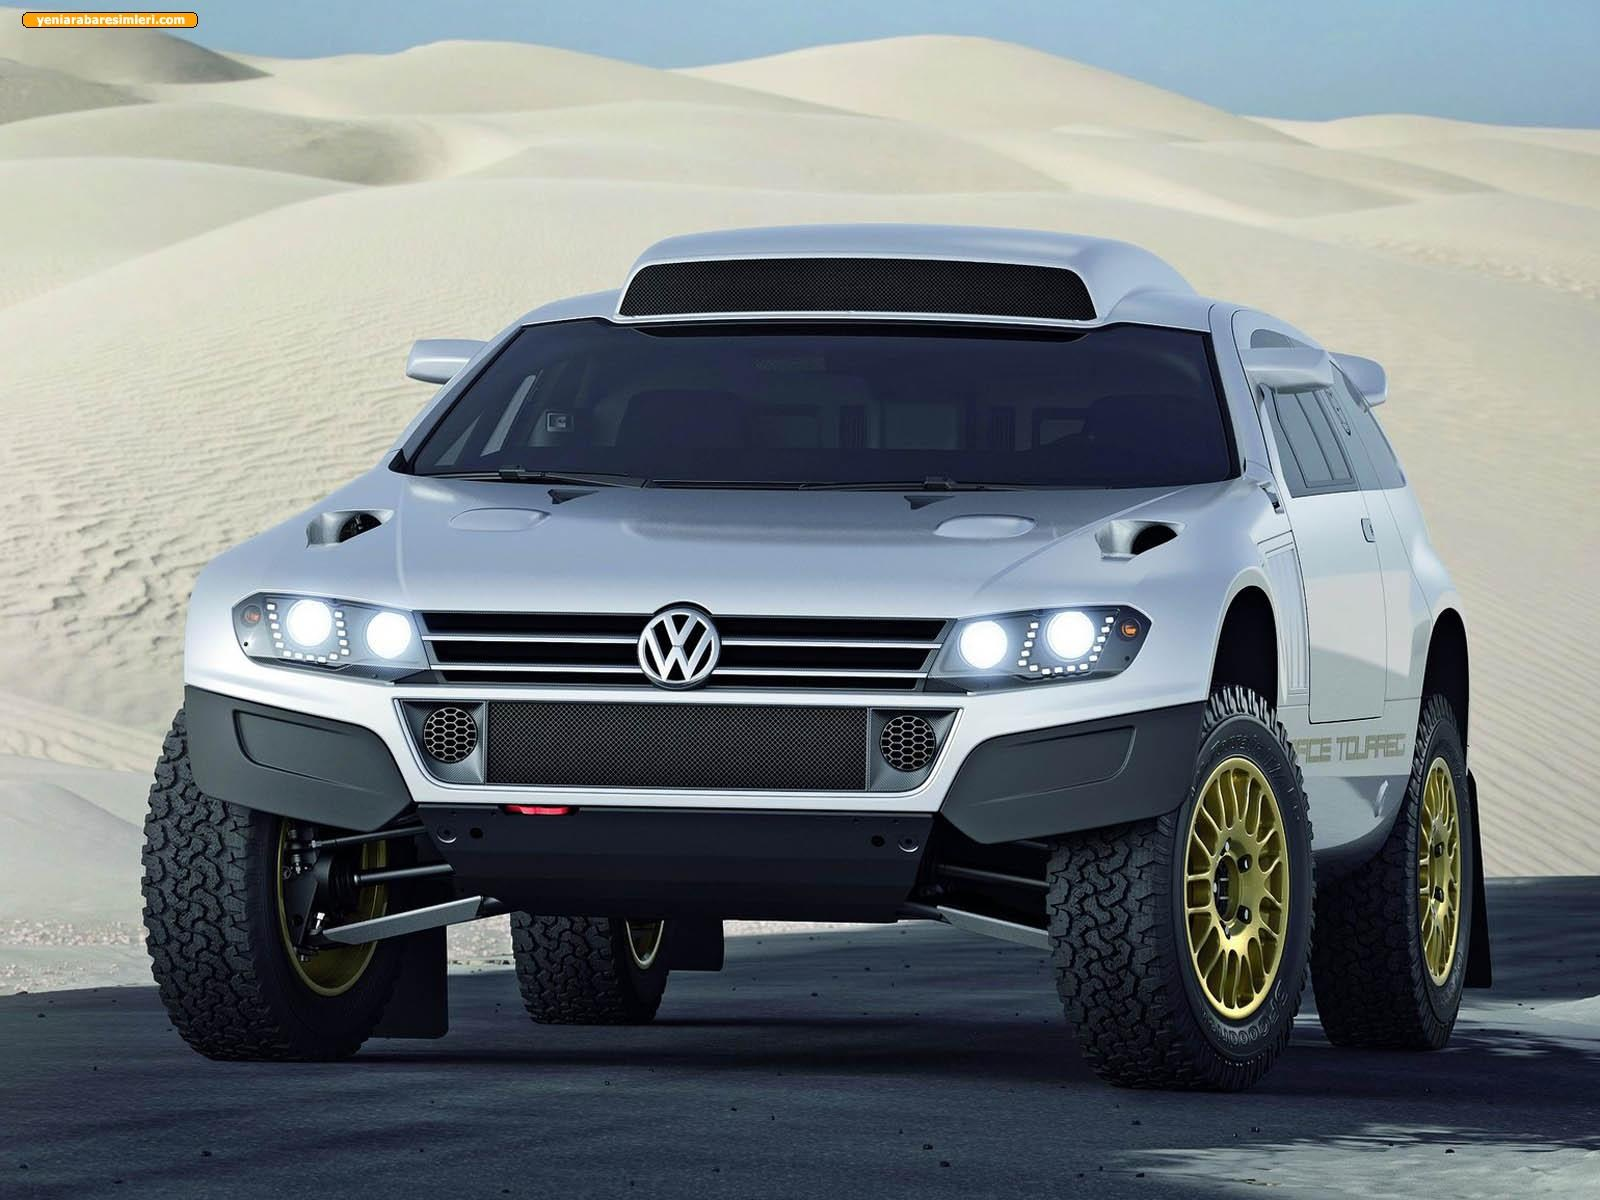 2015 volkswagen touareg cc 1024 x 768 wallpaper new thing in automotive. Black Bedroom Furniture Sets. Home Design Ideas